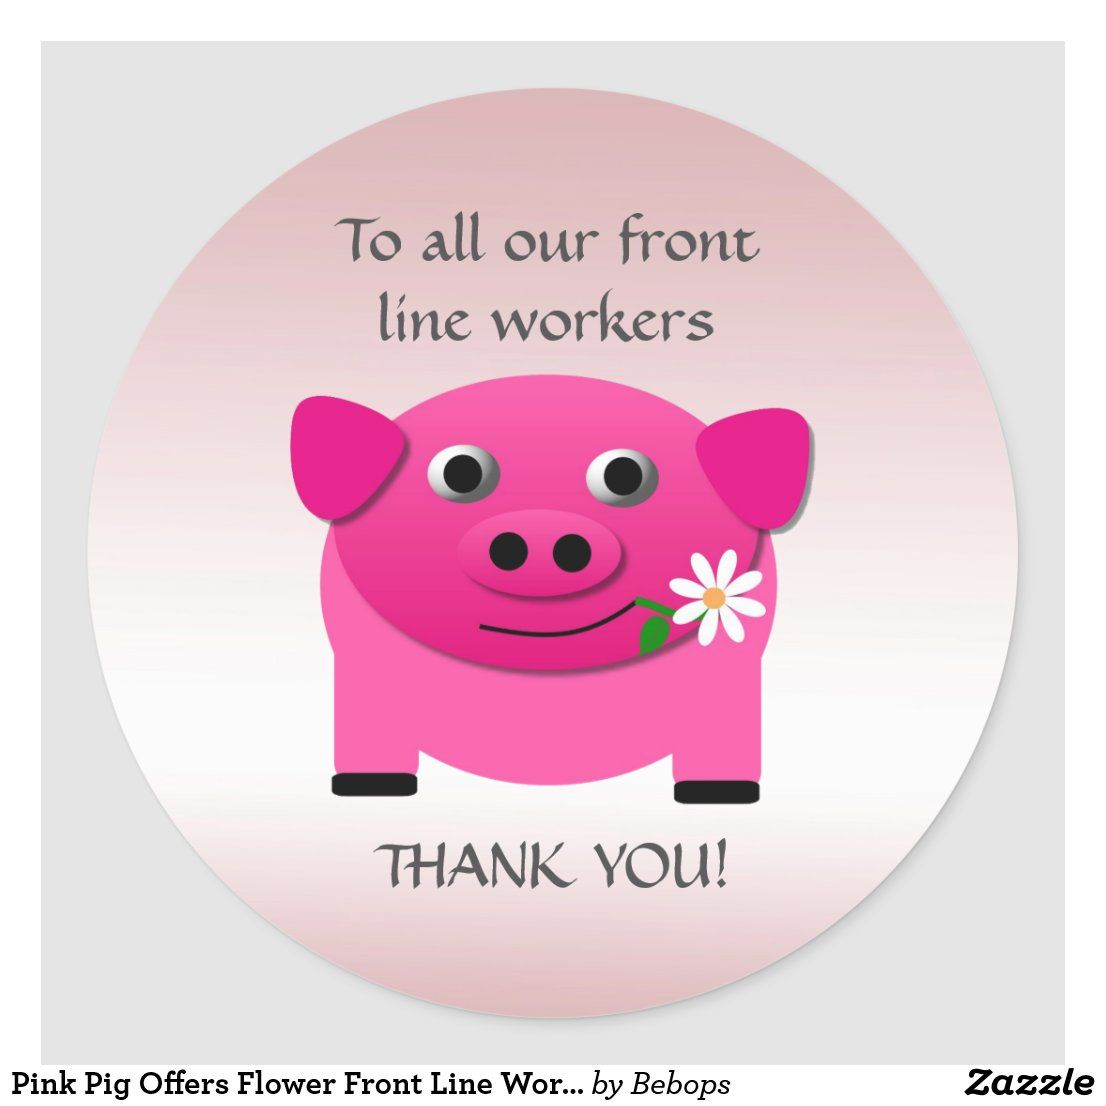 Pink Pig Offers Flower Front Line Workers Stickers ...